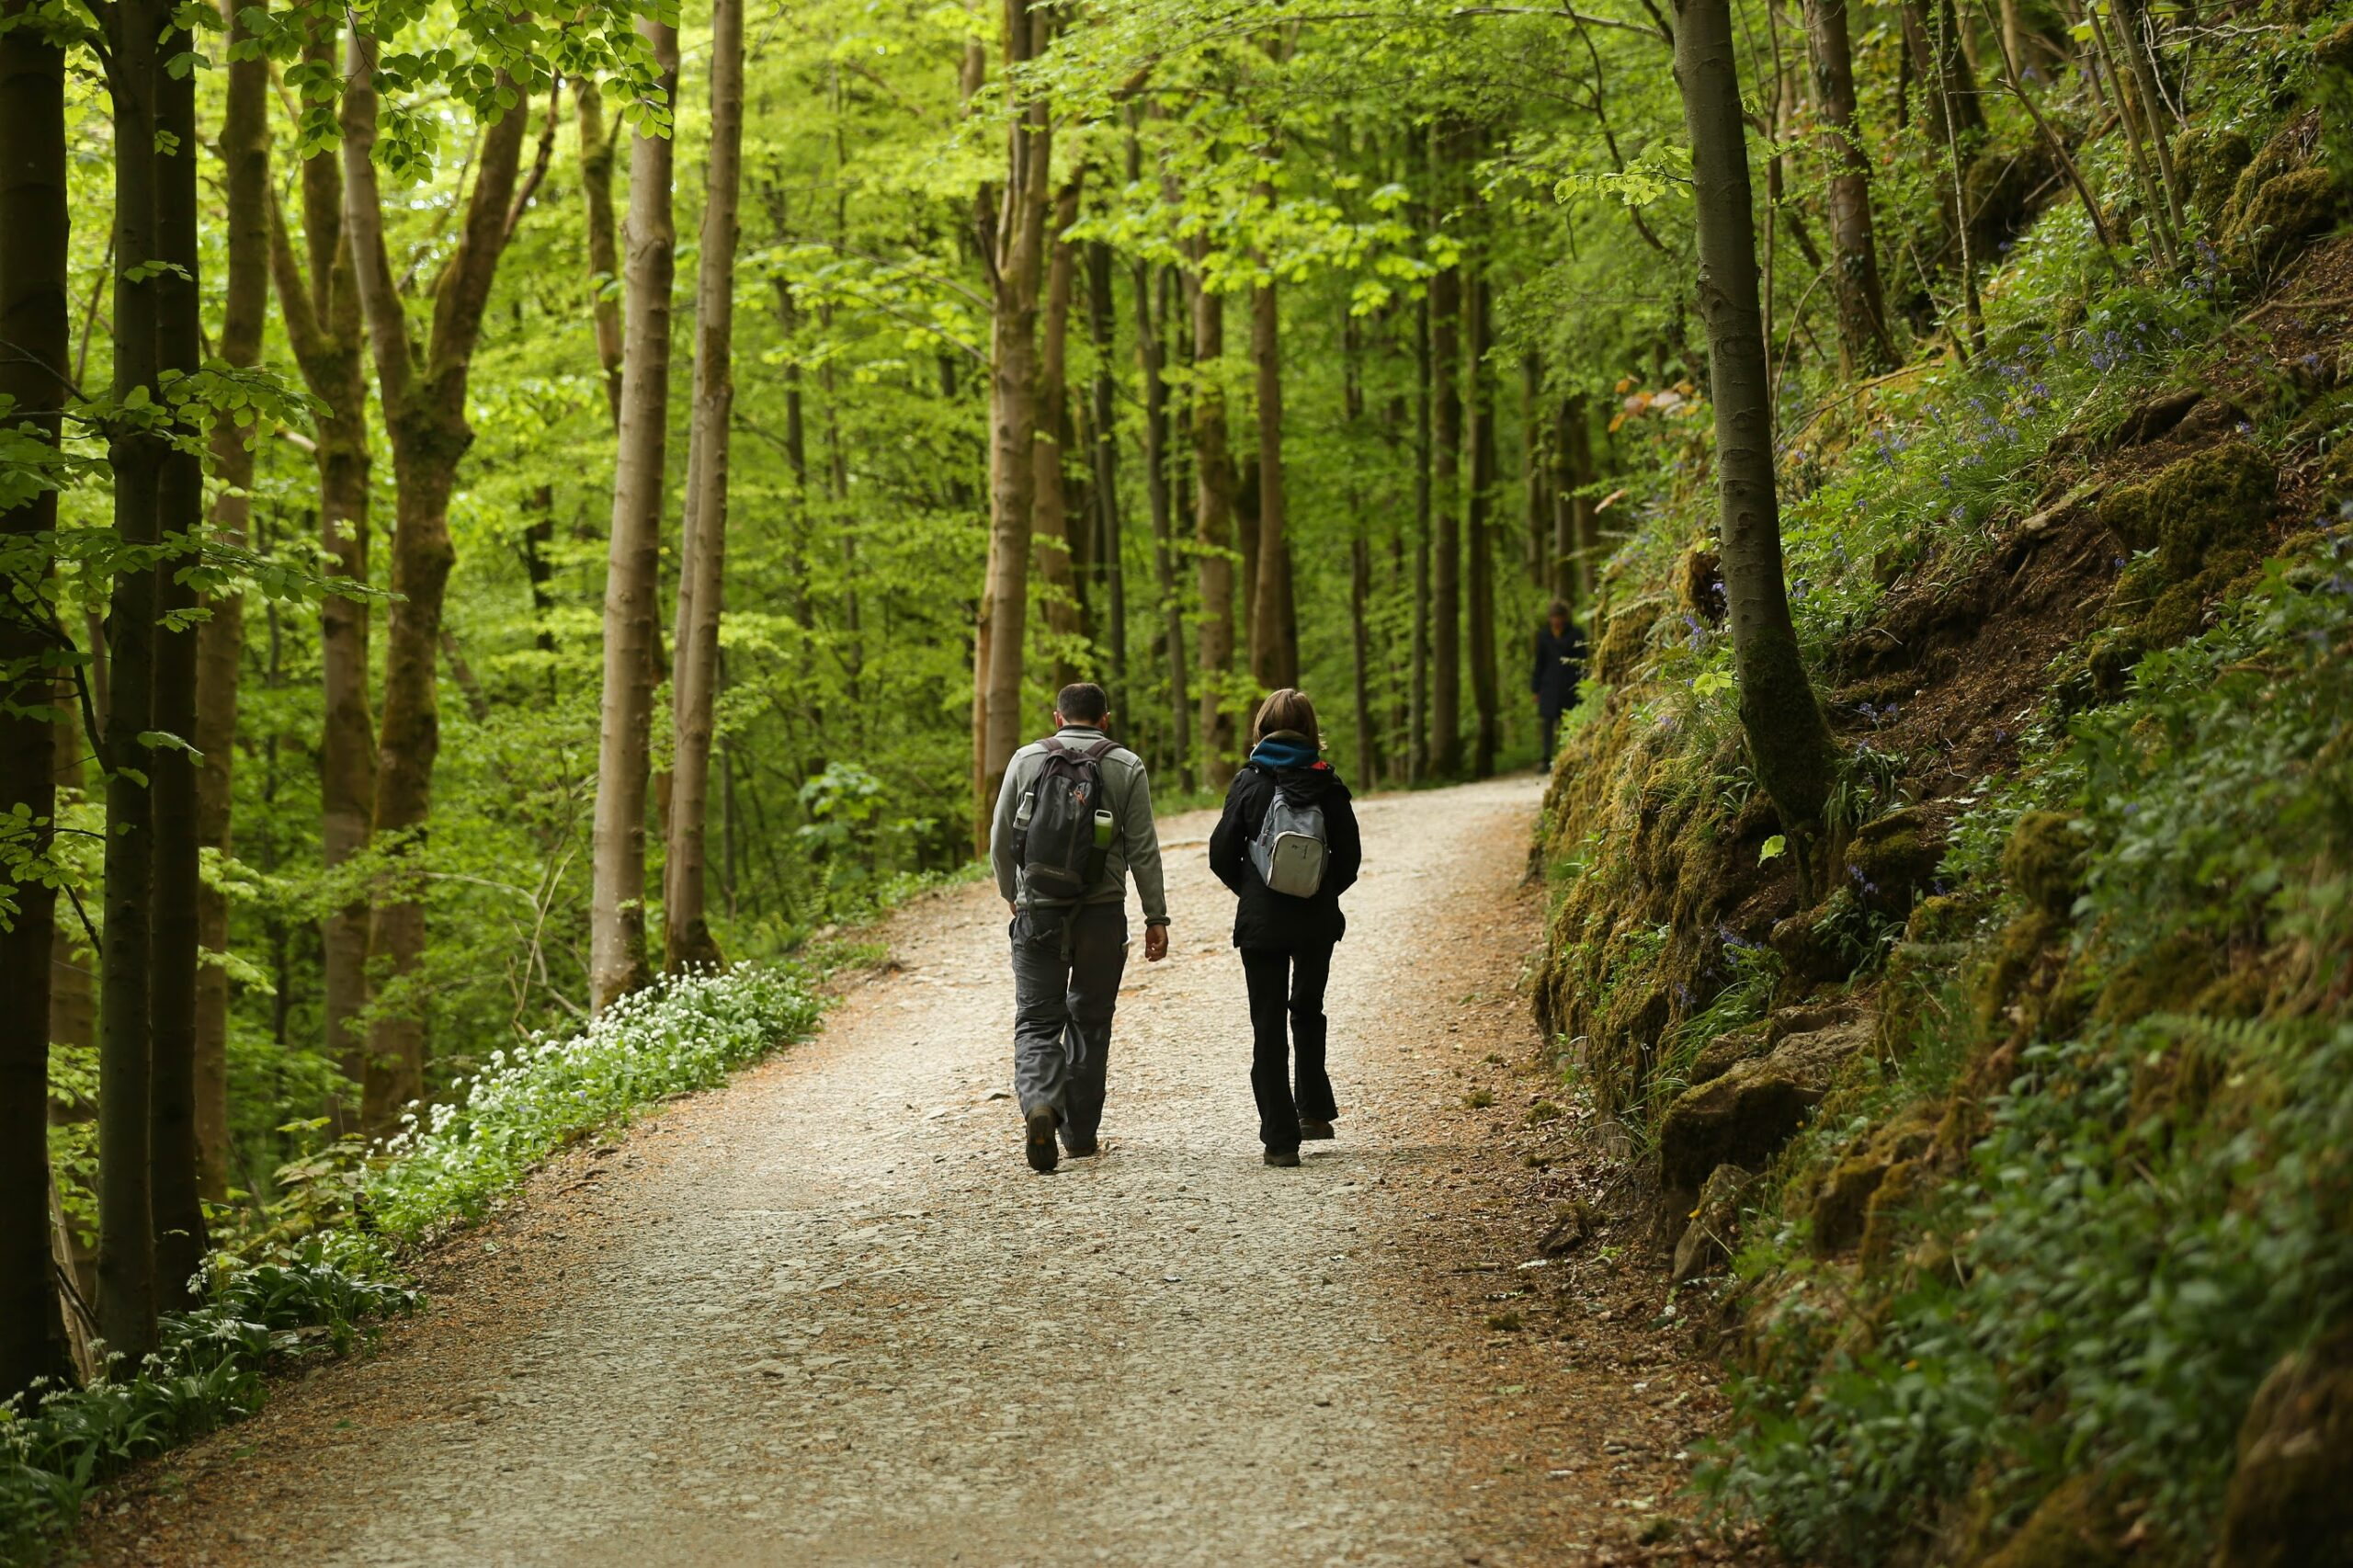 10 things to look out for on The Ingleborough Estate Nature Trail